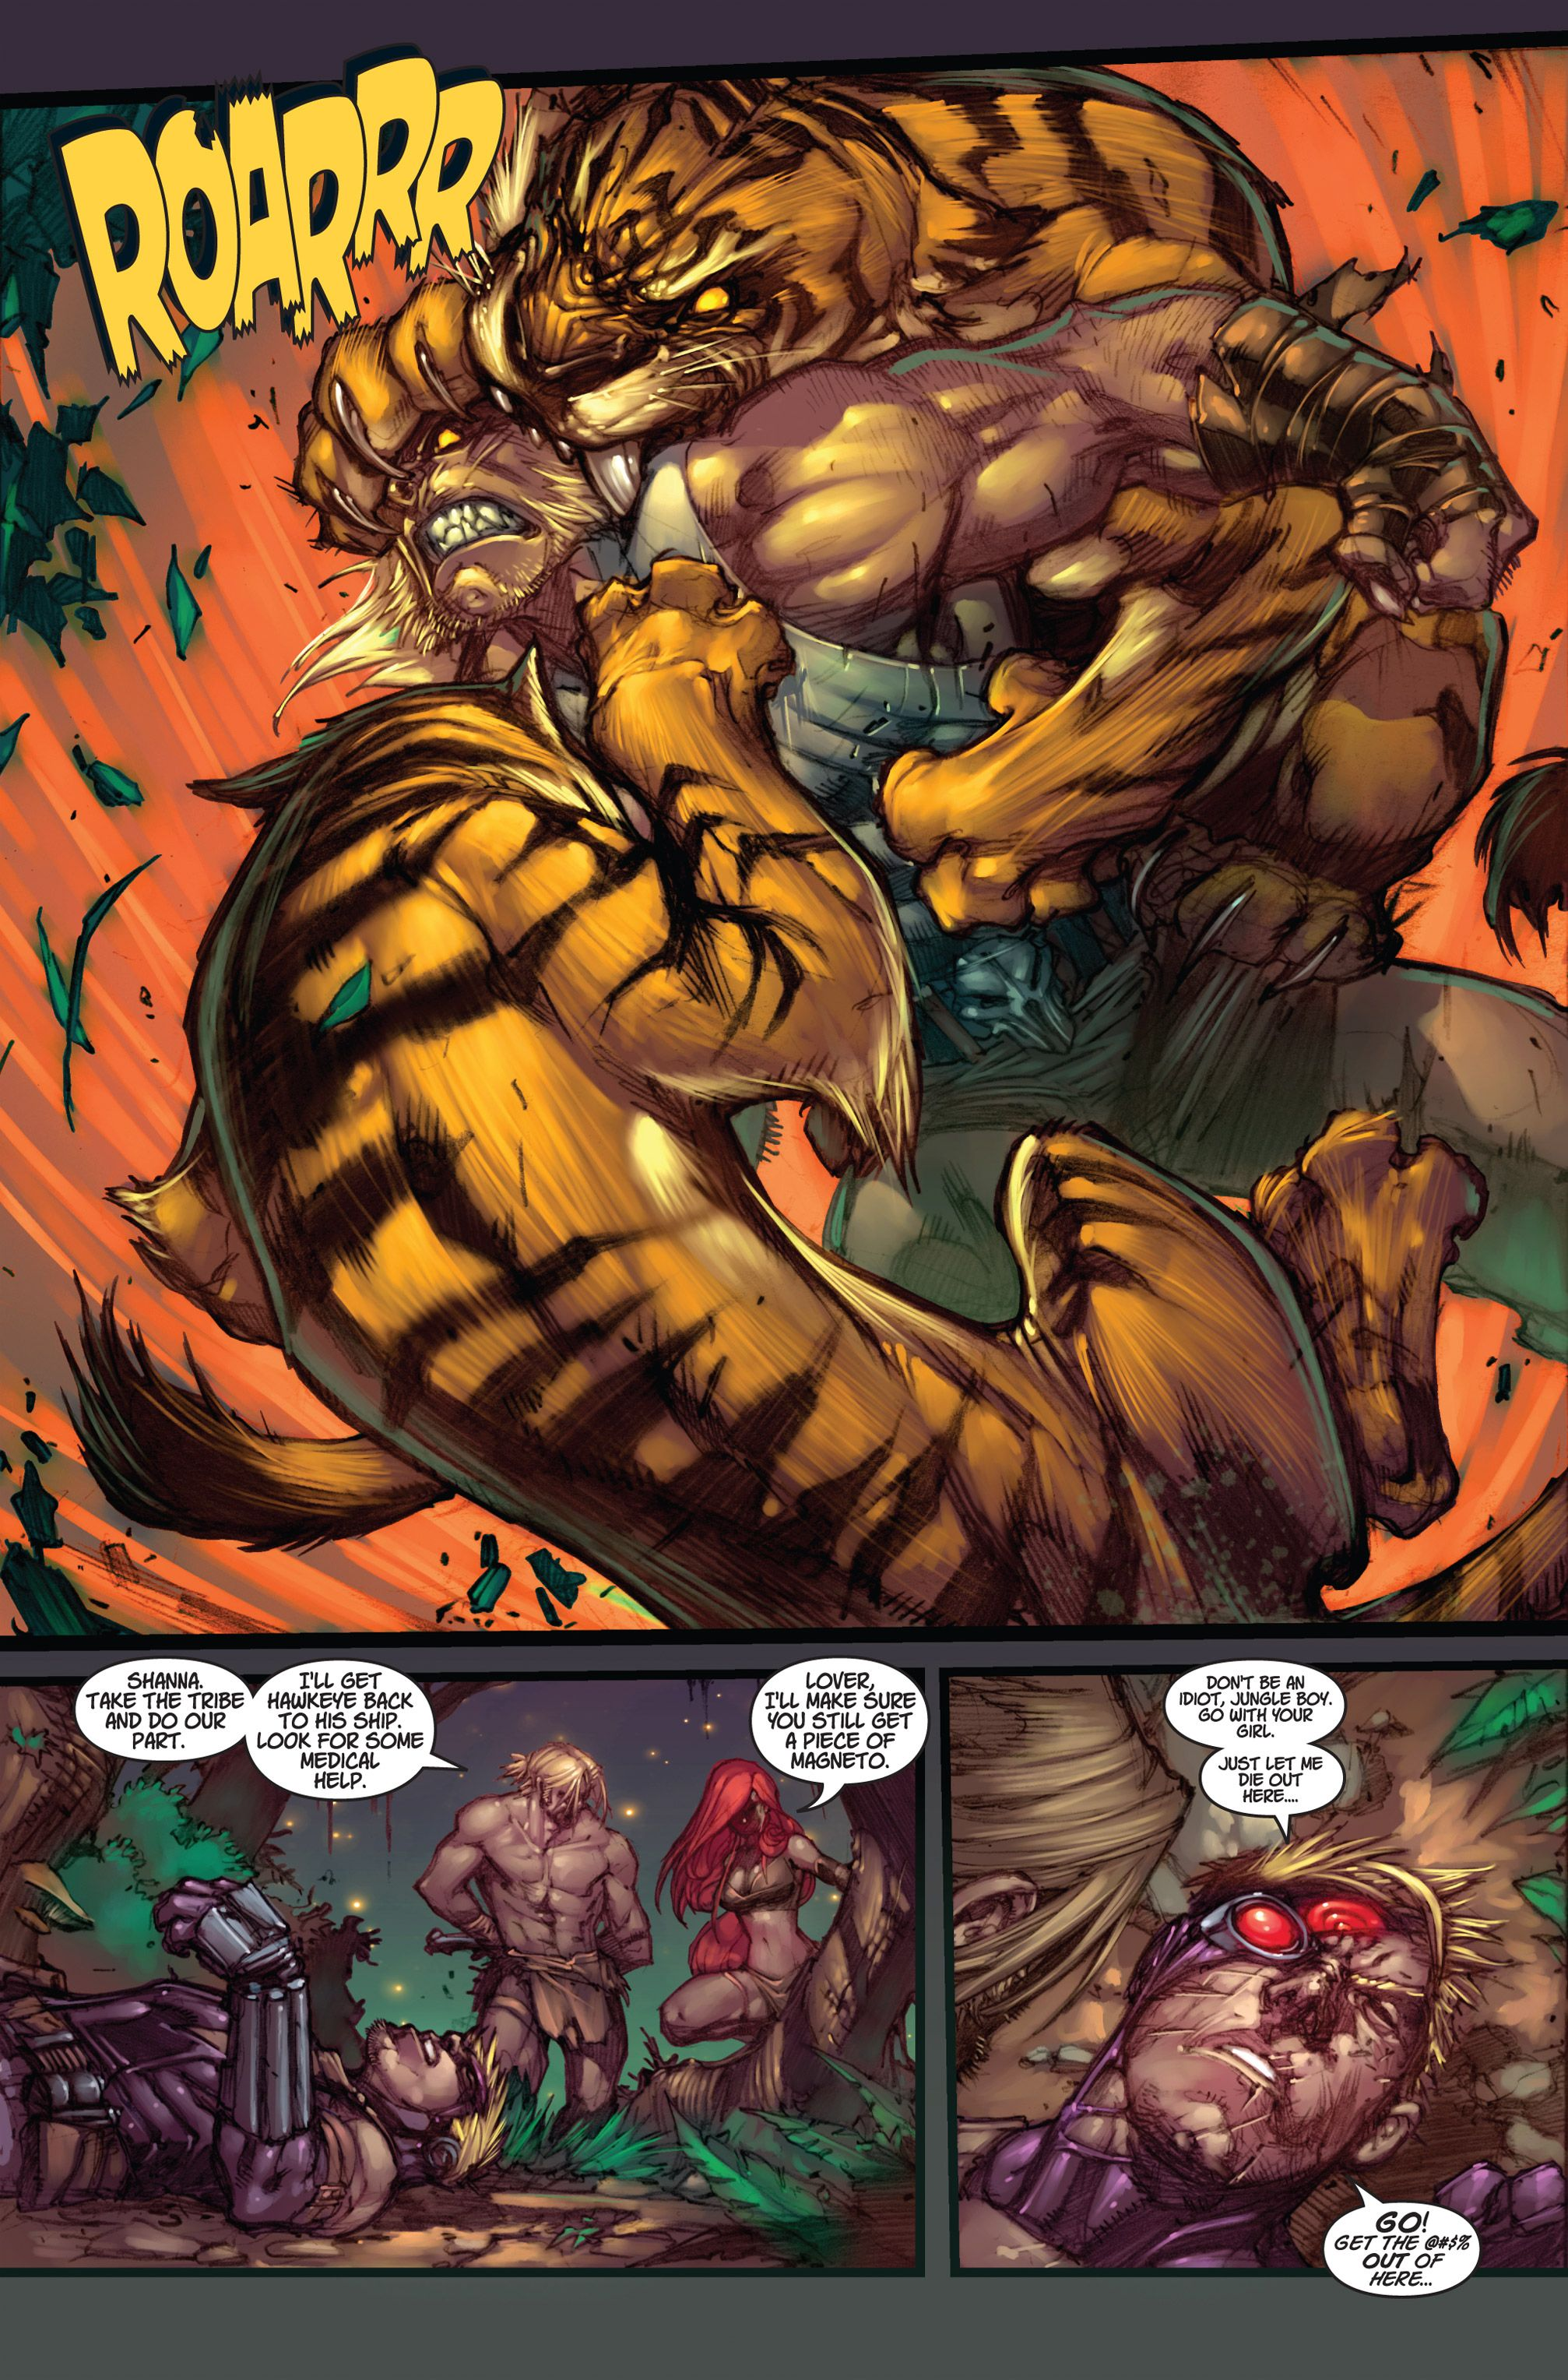 Ultimates 3 Issue 4 Read Ultimates 3 Issue 4 ic online in